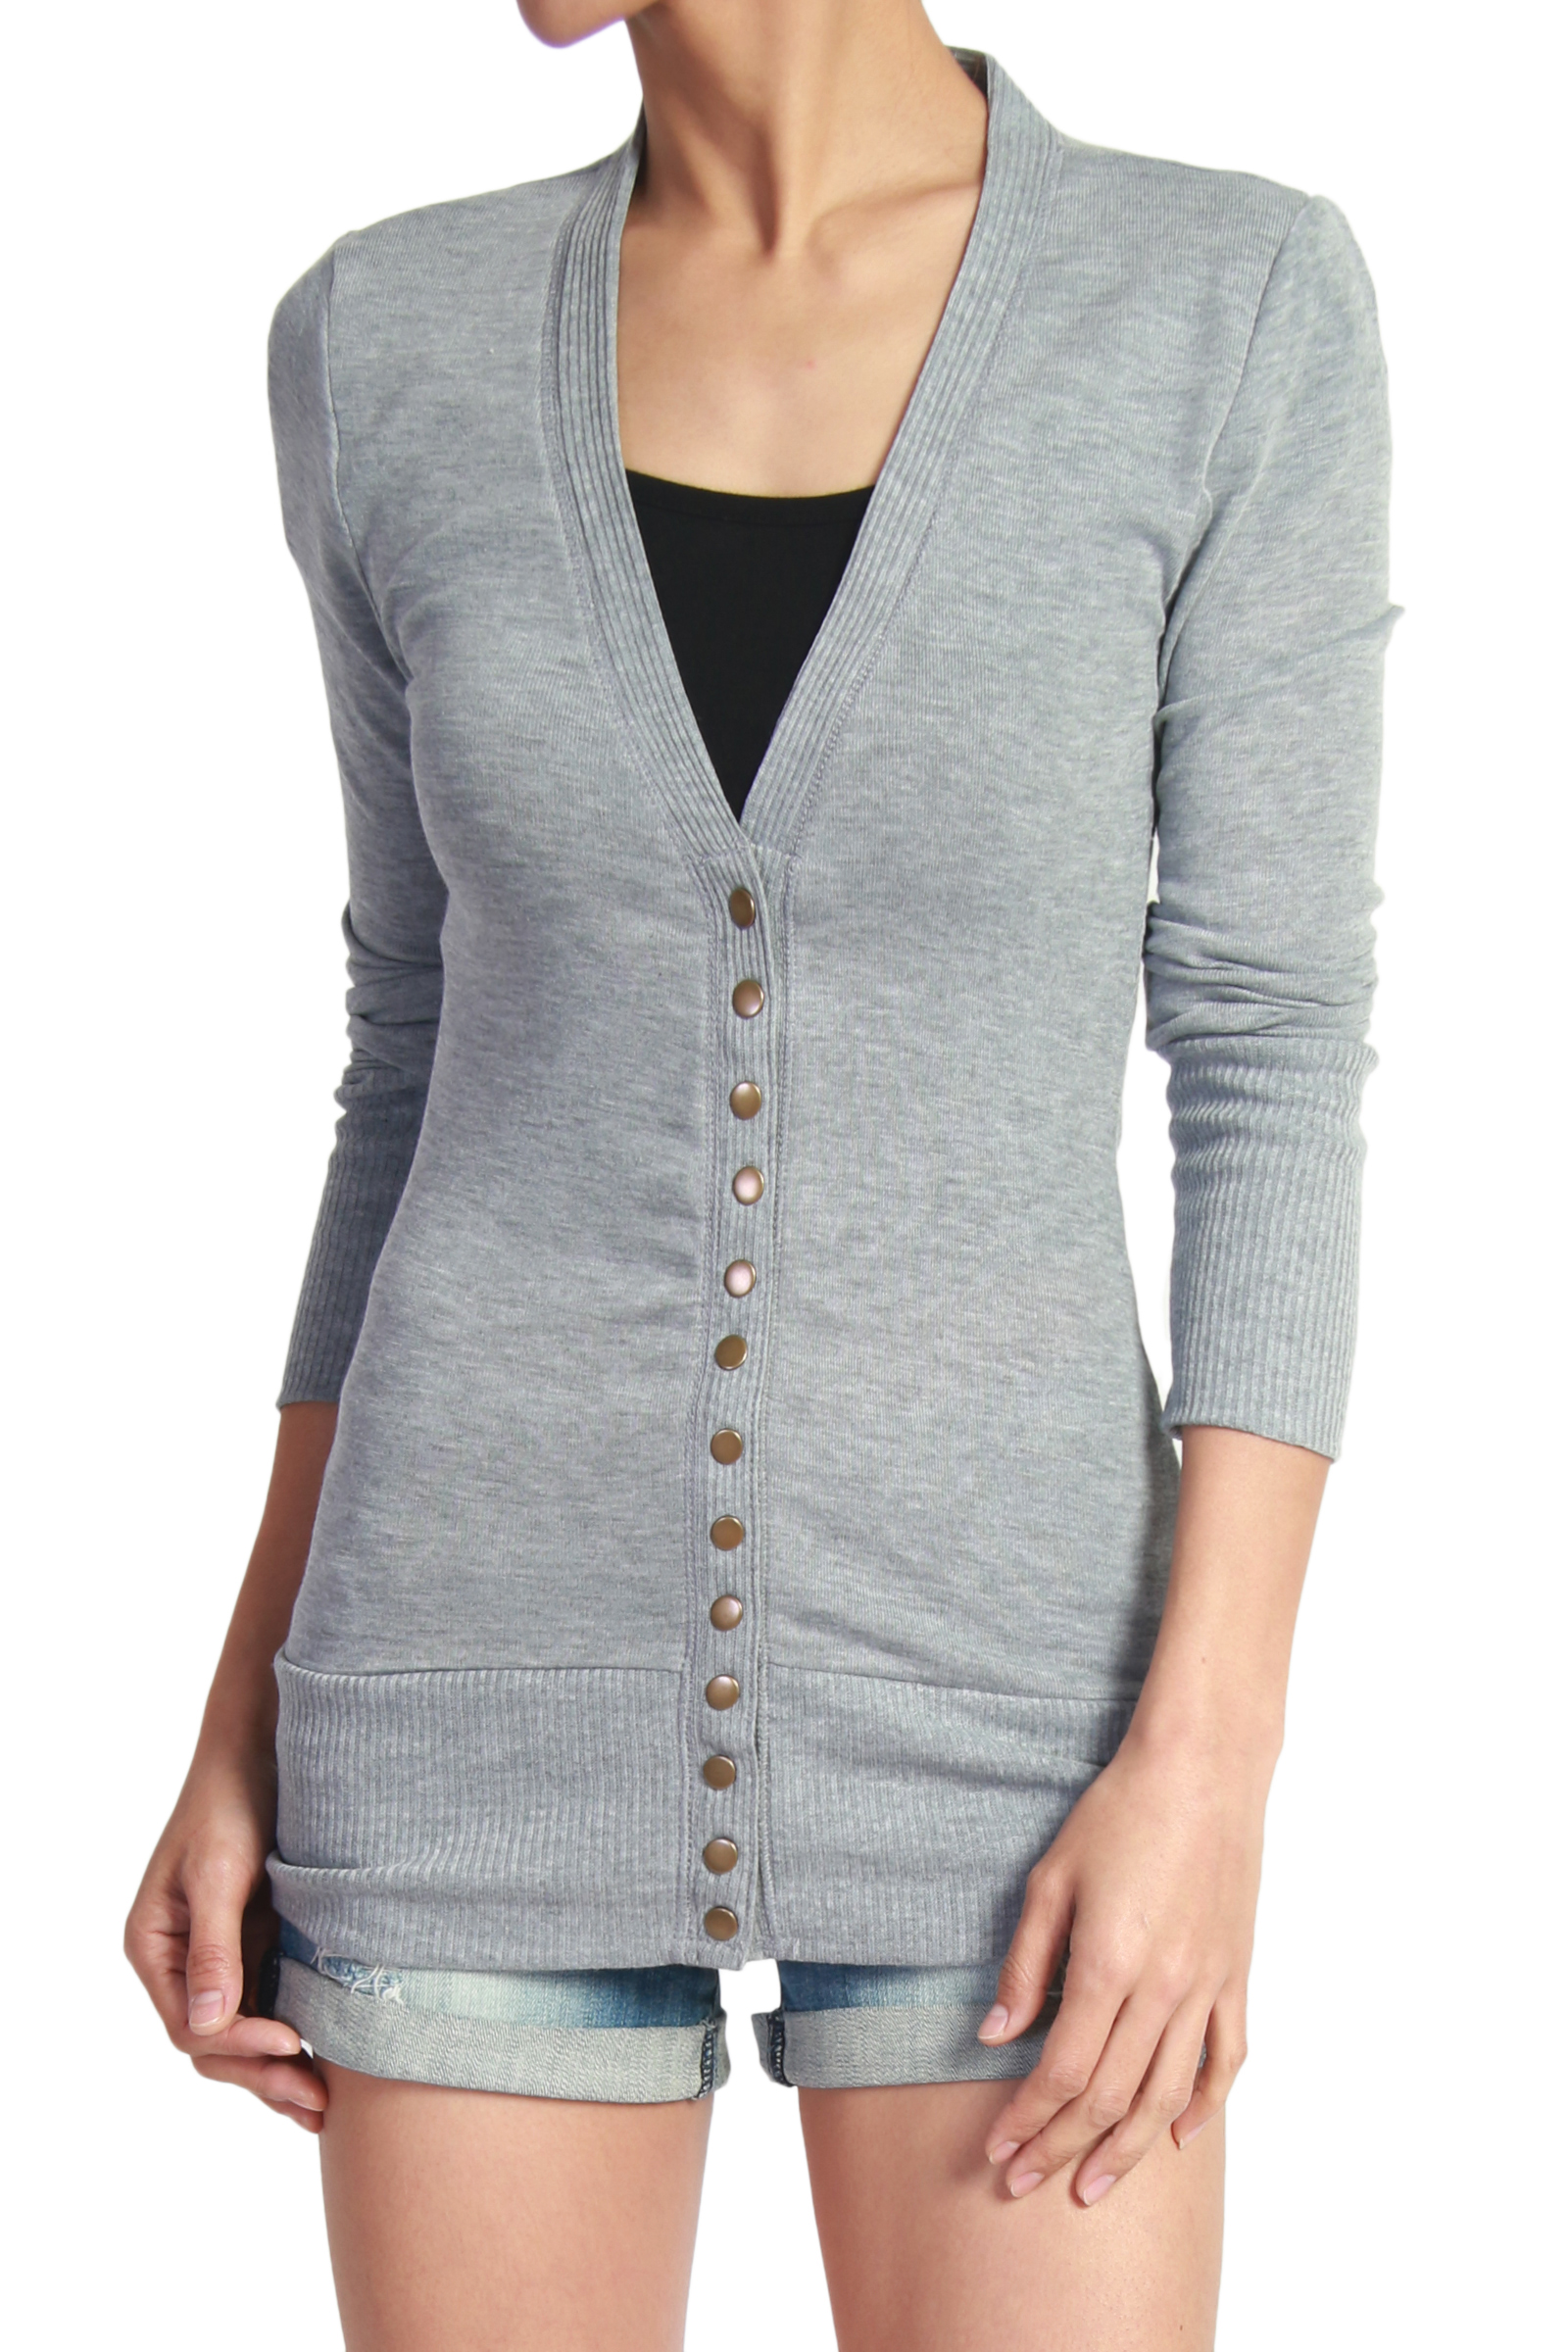 TheMogan Women's S~3XL Basic Snap Button V-Neck Long Sleeve Knit Cardigan